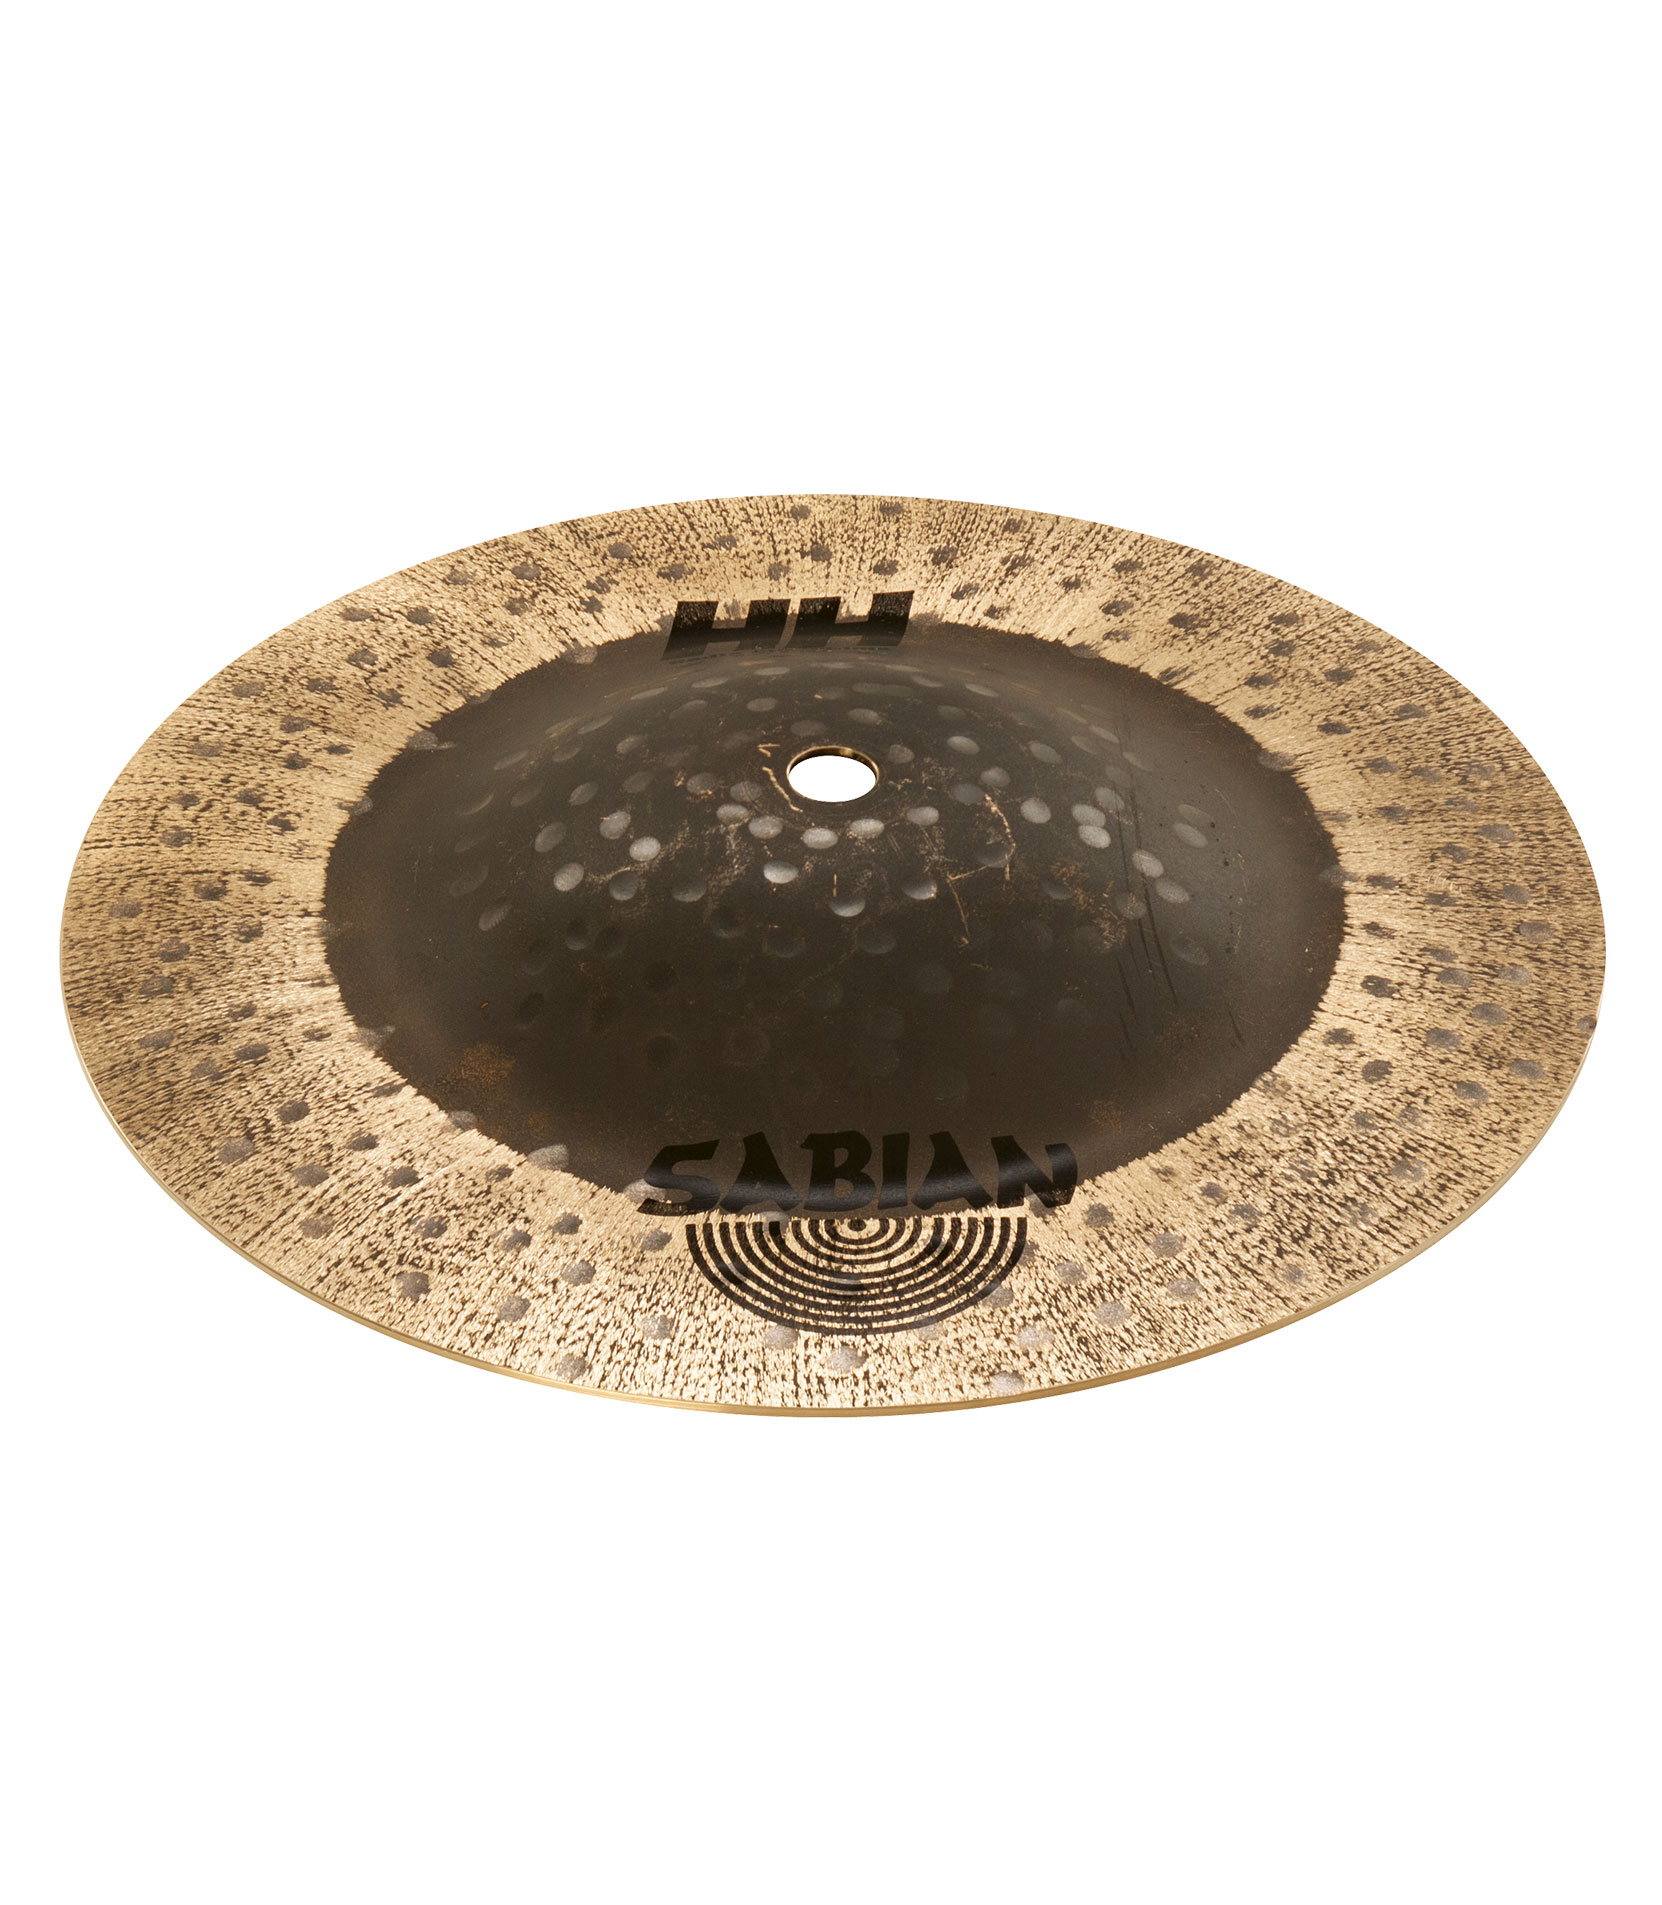 Buy Sabian 9 HH Radia Cup Chime Melody House